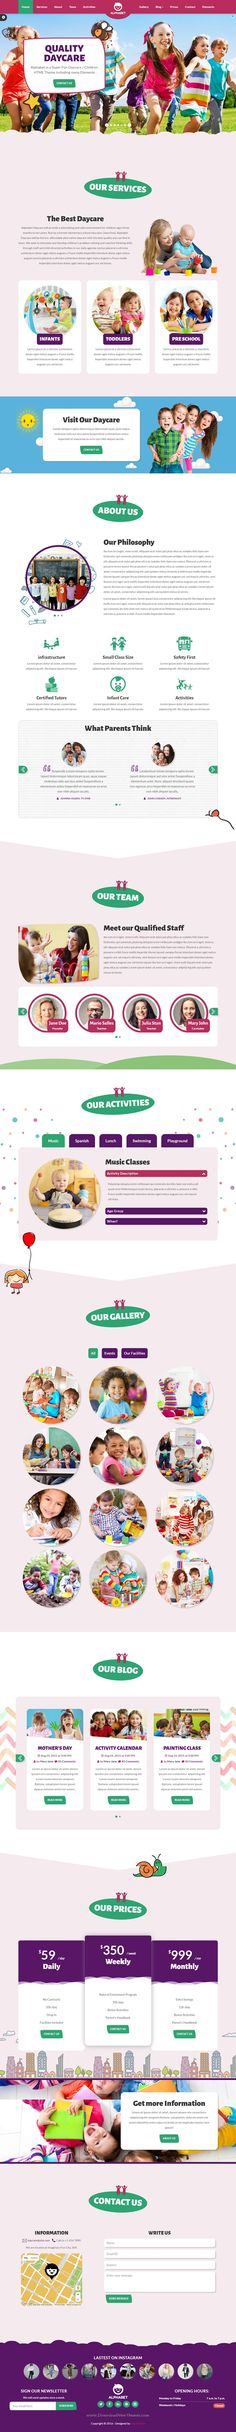 Alphabet is a Fun & Colorful fully responsive One page Bootstrap HTML5 theme made for any Children related #websites. The theme includes many fun elements that are very easy to edit. #preschool #childcare